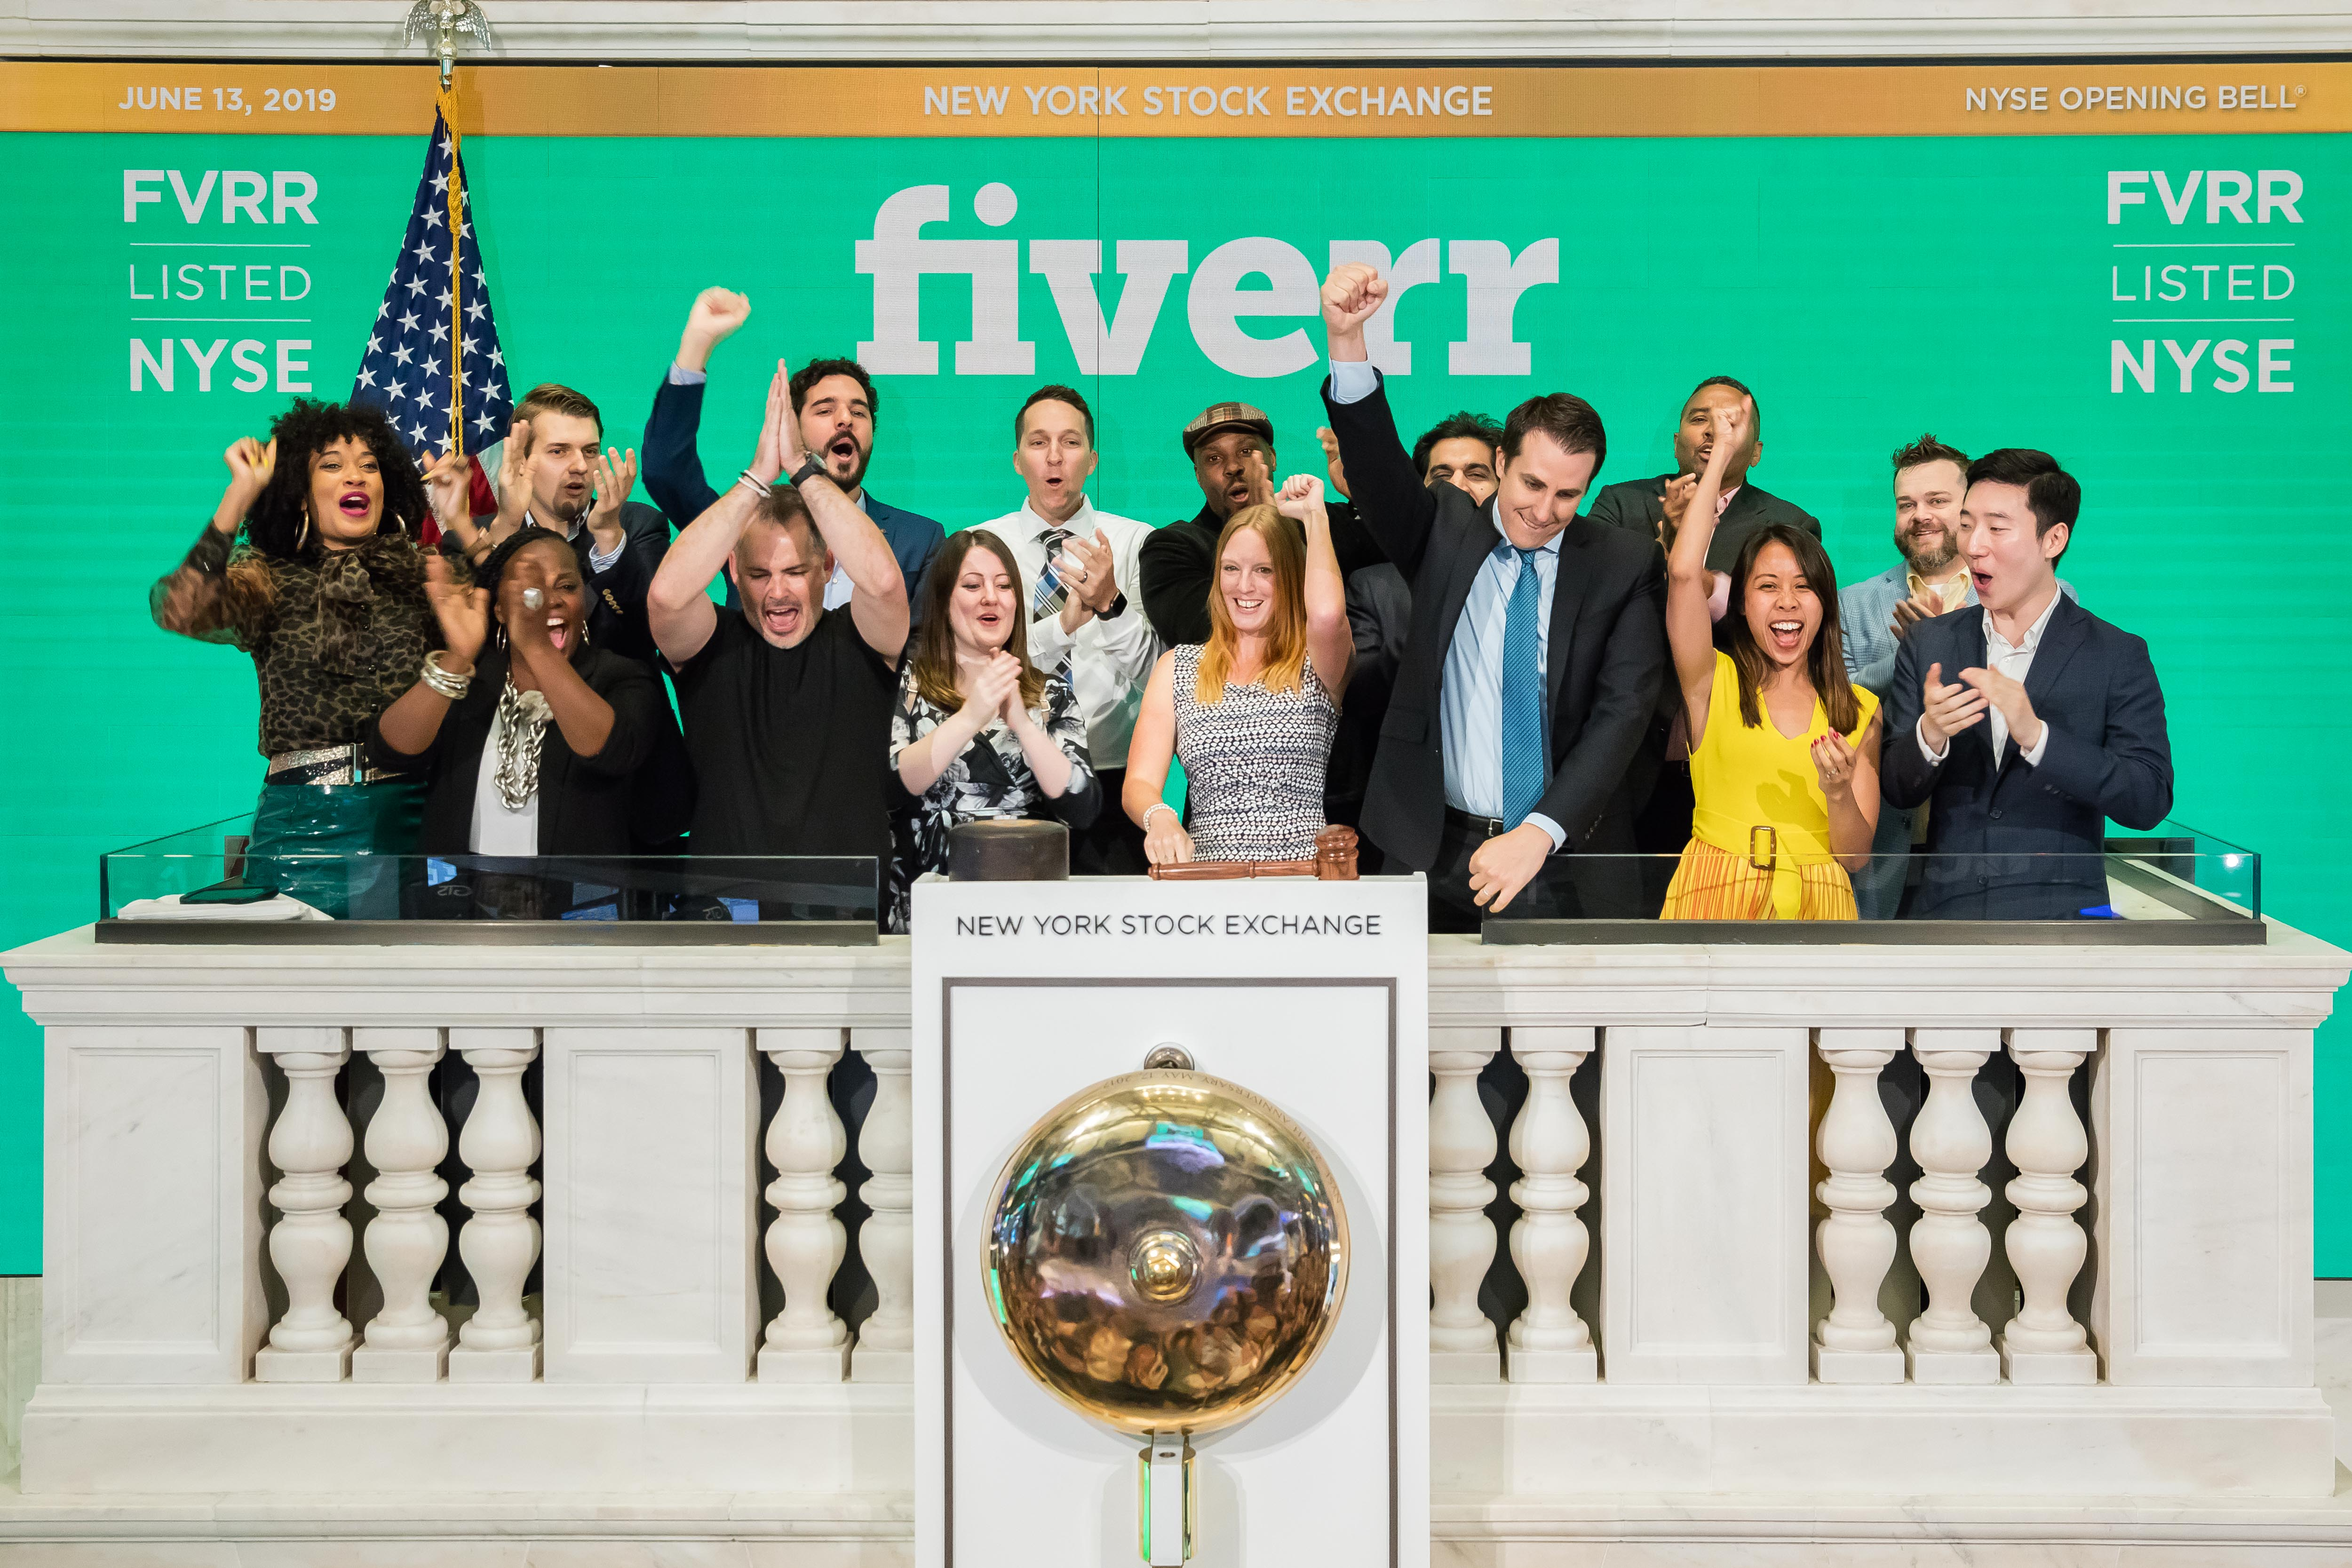 Fiverr IPO NYSE